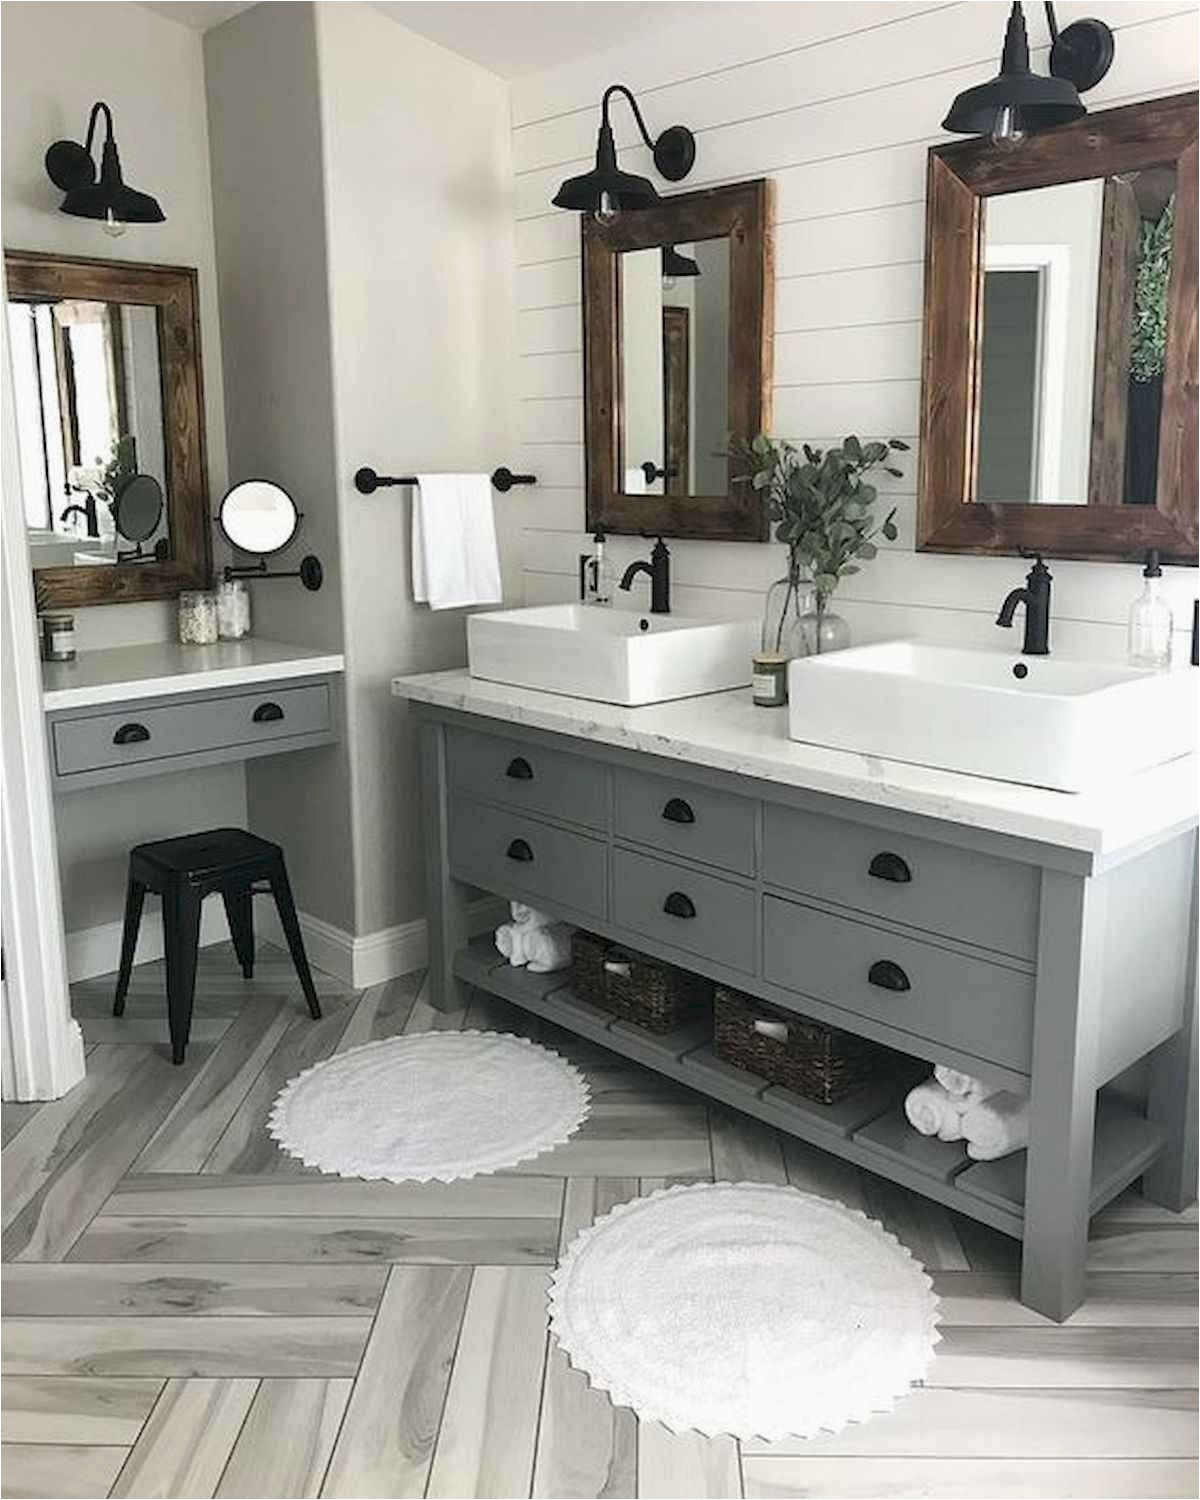 Rugs In Bathroom Ideas 25 Stunning Rug Bathroom Ideas and Makeover with Images